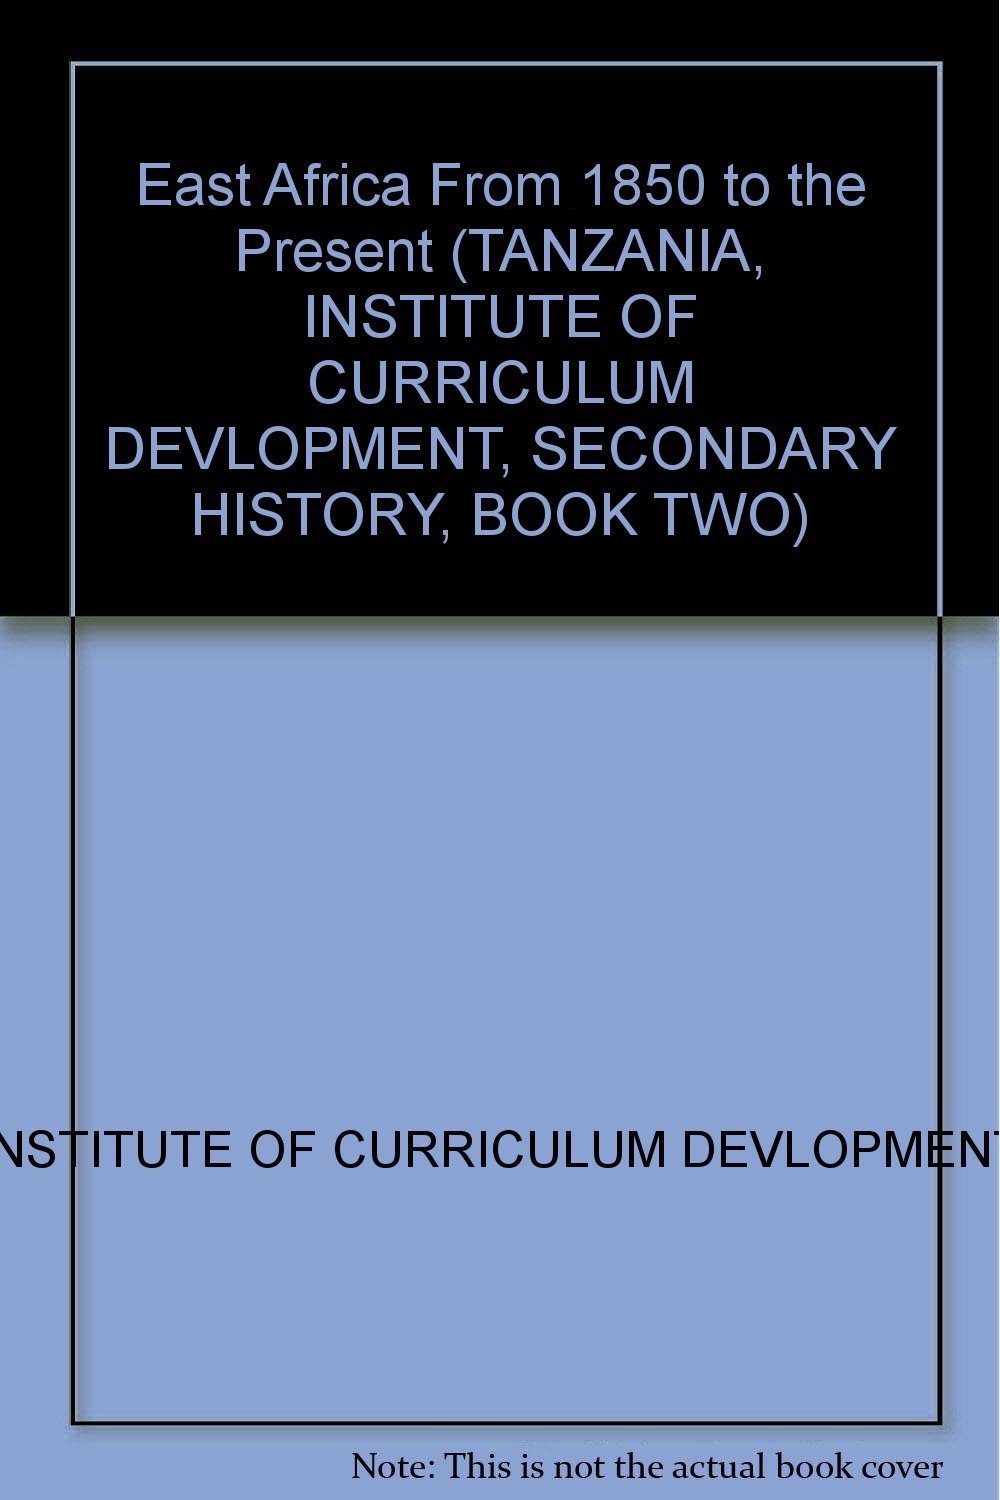 East Africa From 1850 to the Present (TANZANIA, INSTITUTE OF CURRICULUM DEVLOPMENT, SECONDARY HISTORY, BOOK TWO)